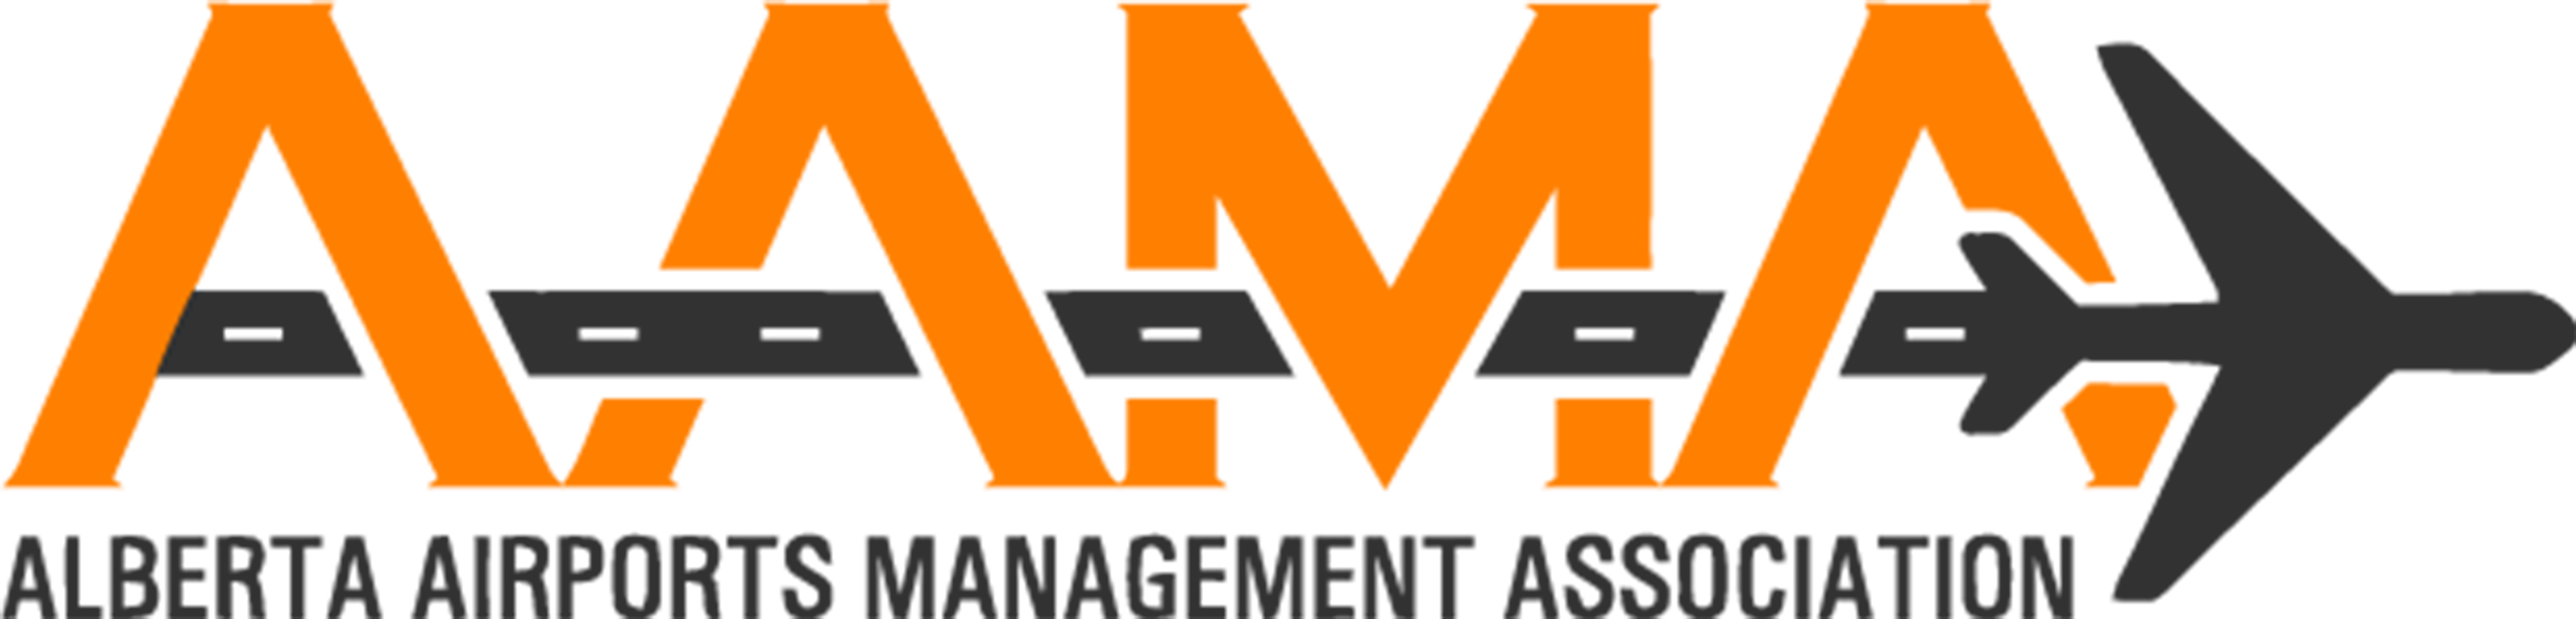 Alberta Airports Management Association